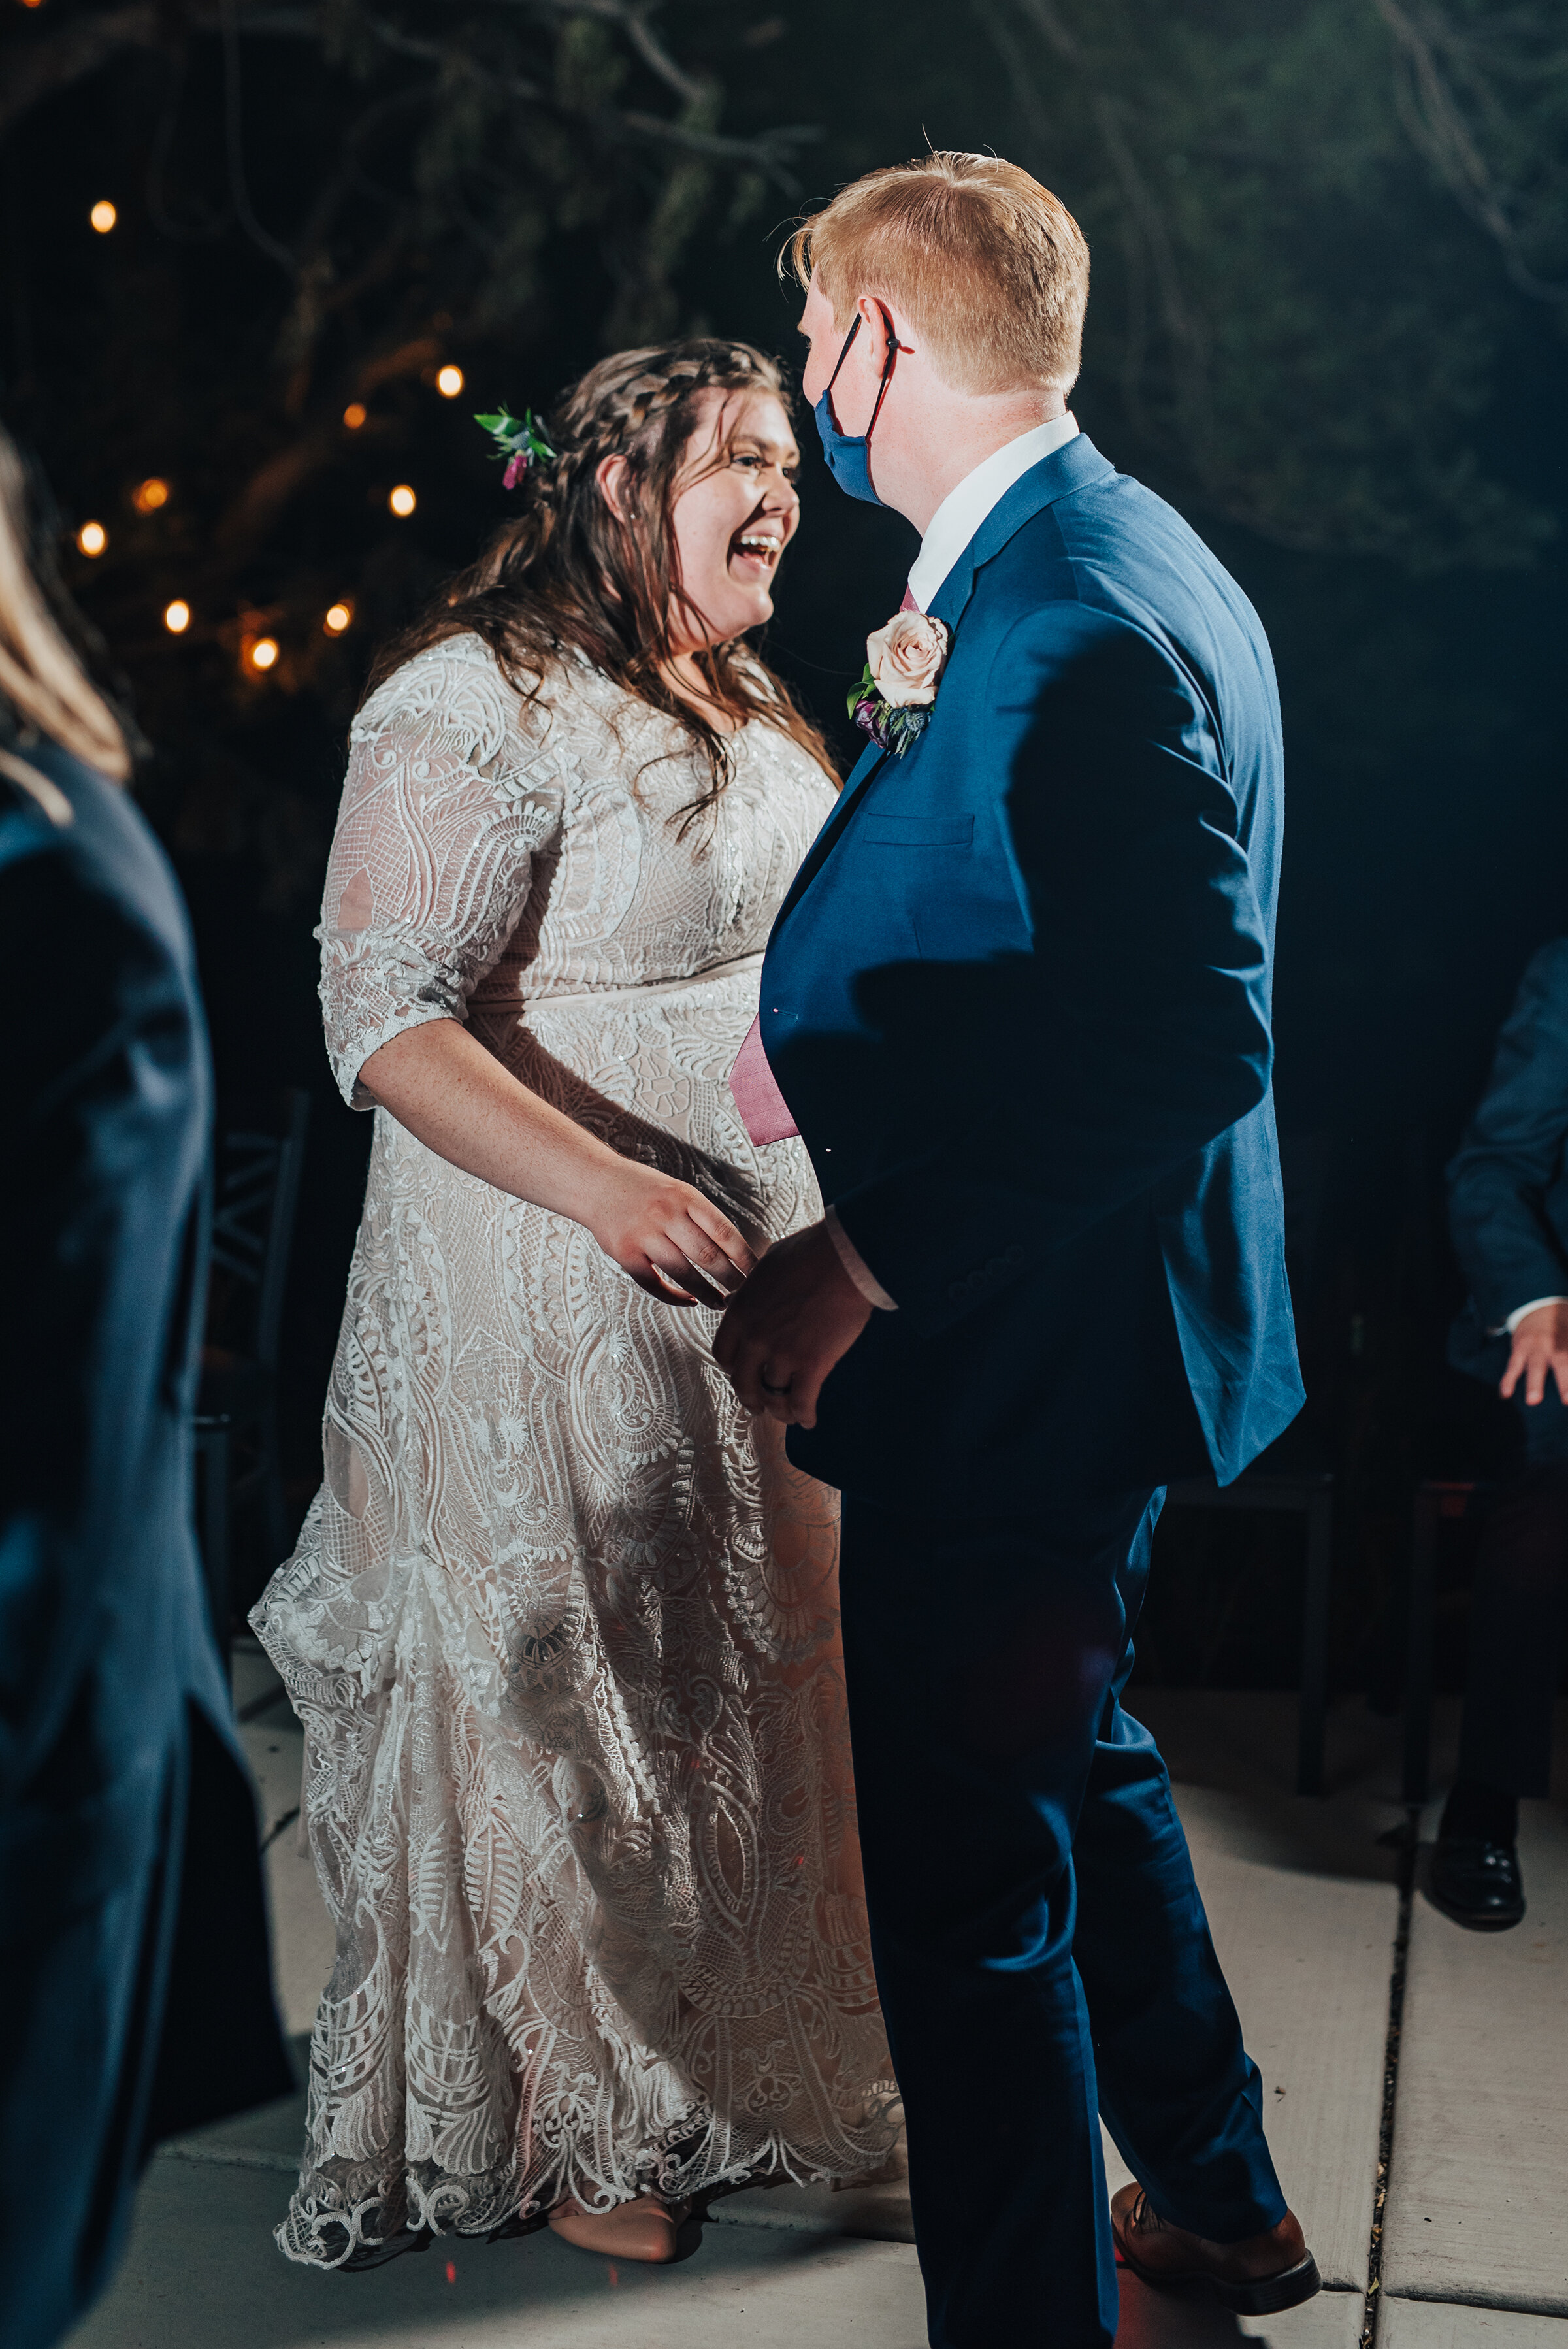 The moment the bride and groom say farewell to guests in Logan, Utah wedding shot by Kristi Alyse photography. Bride and groom escape send off honey moon wedding day inspo laughter in the night time northern Utah Kristi Alyse photography Utah bride #weddinginspo #loganutah #brideandgroom #utahbride #utahweddingphotographer#meaningfulmoment #weddingphotography #northernutahwedding #weddinghairstyles #weddingday #bridals